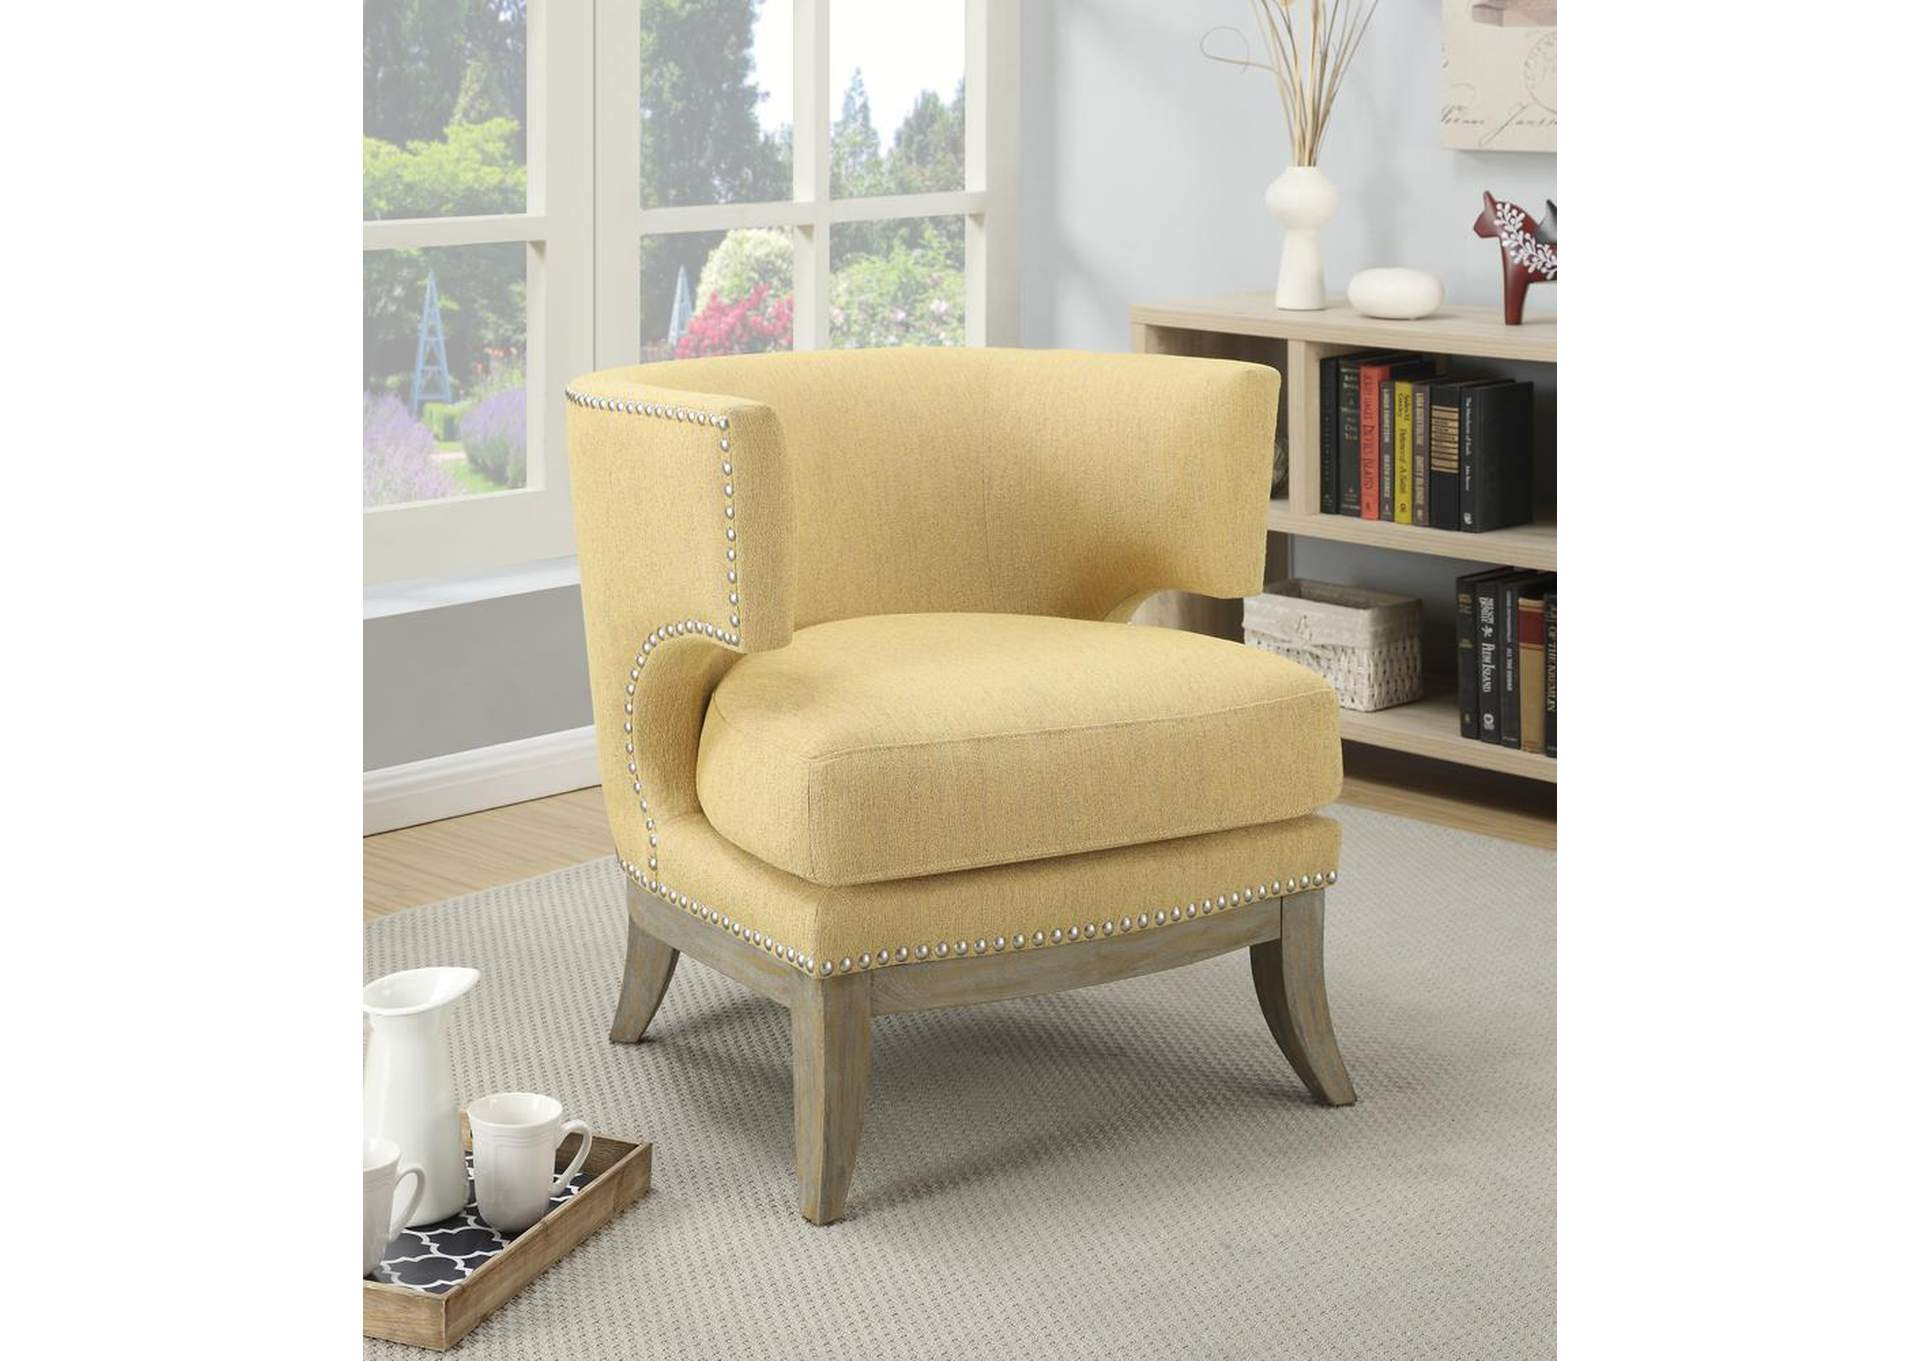 Cool Design Center Orange Ca Gold Accent Chair Pdpeps Interior Chair Design Pdpepsorg